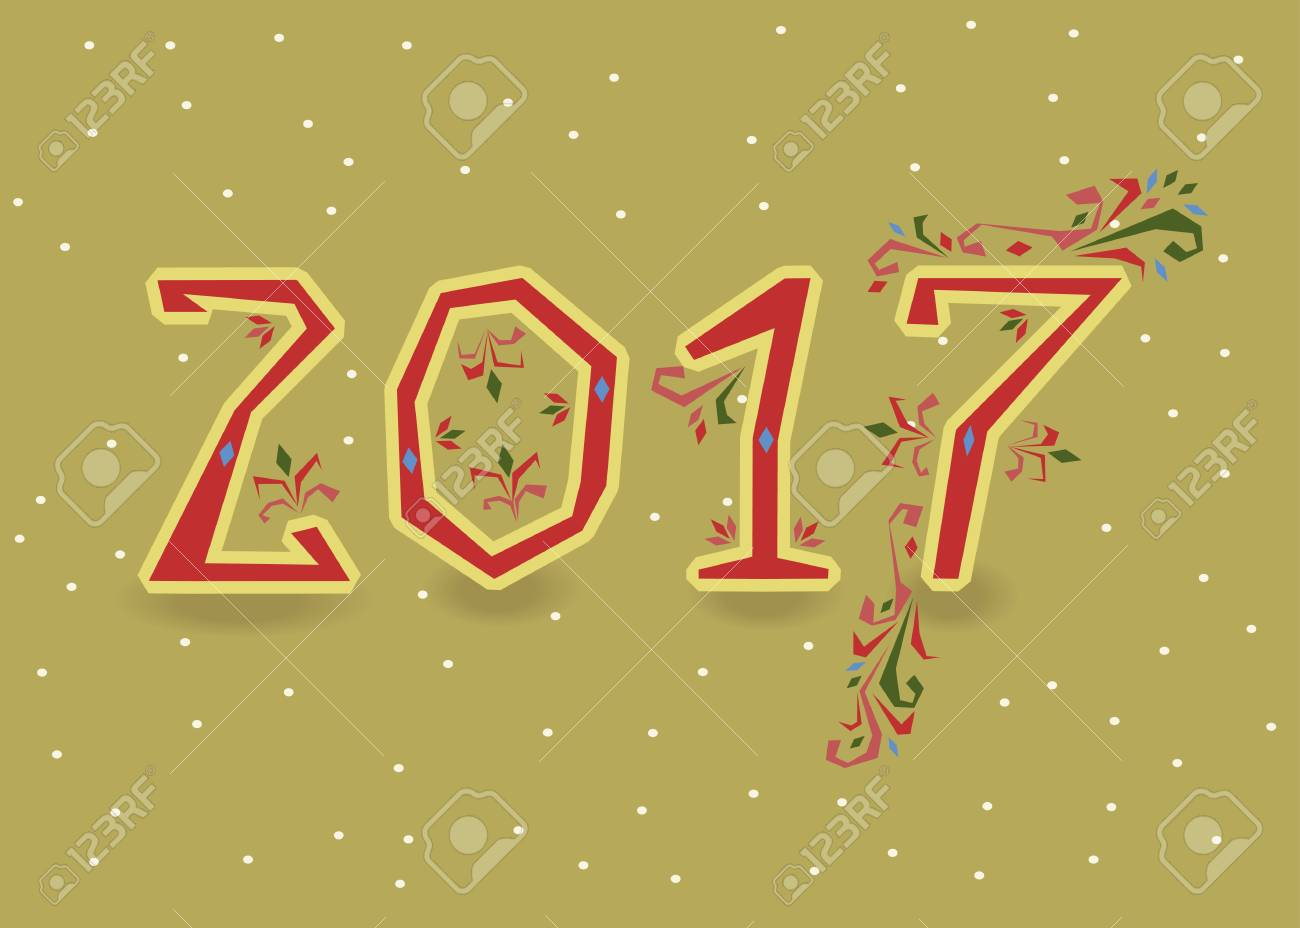 happy new year 2017 calendar template red symbols with floral decor country